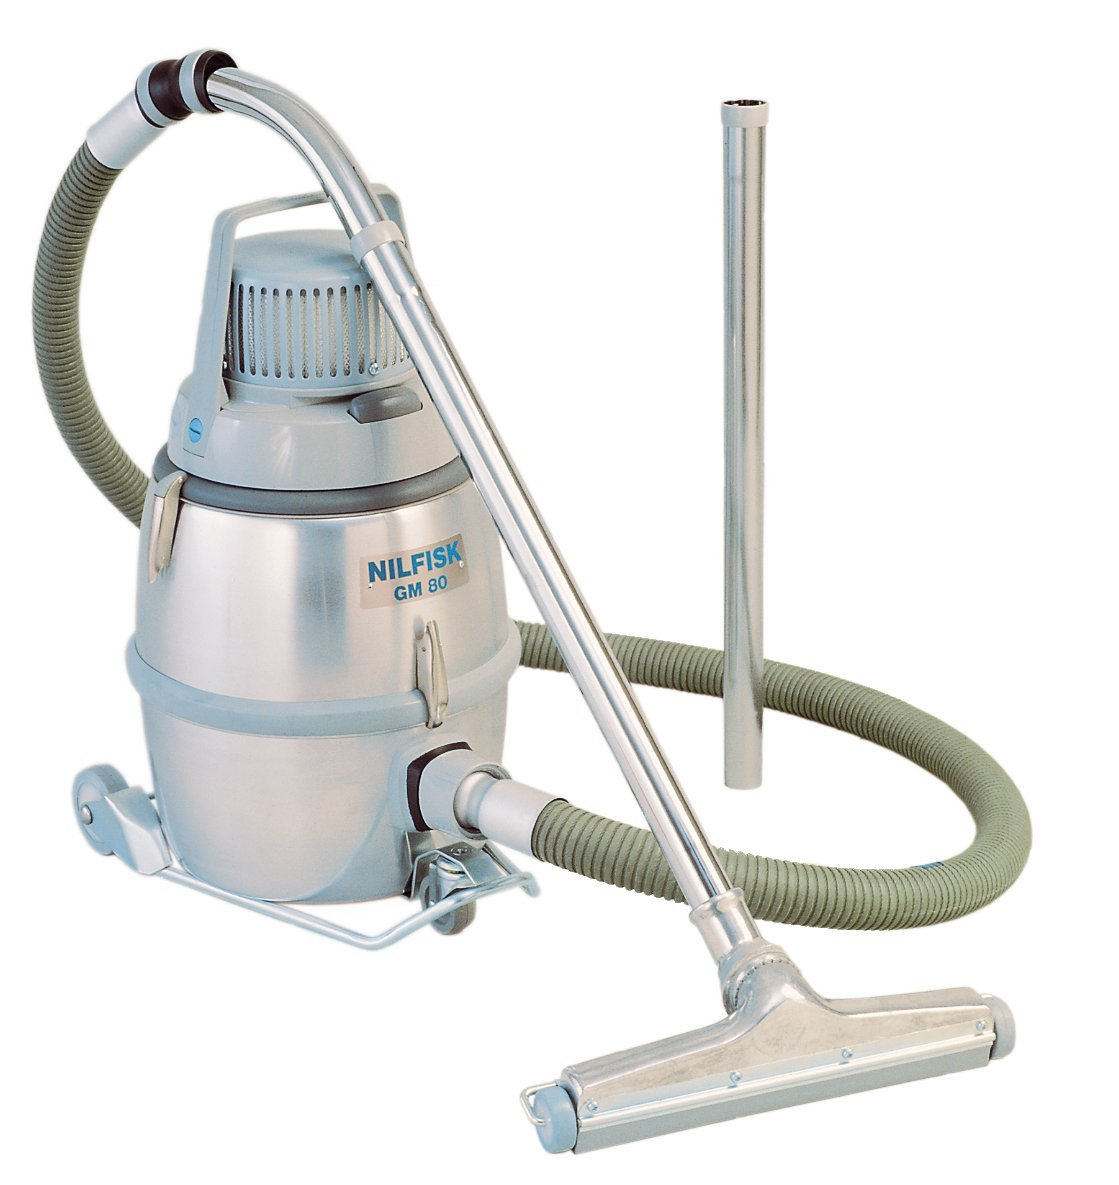 Nilfisk GM 80 HEPA Vacuum Cleaner 01790132